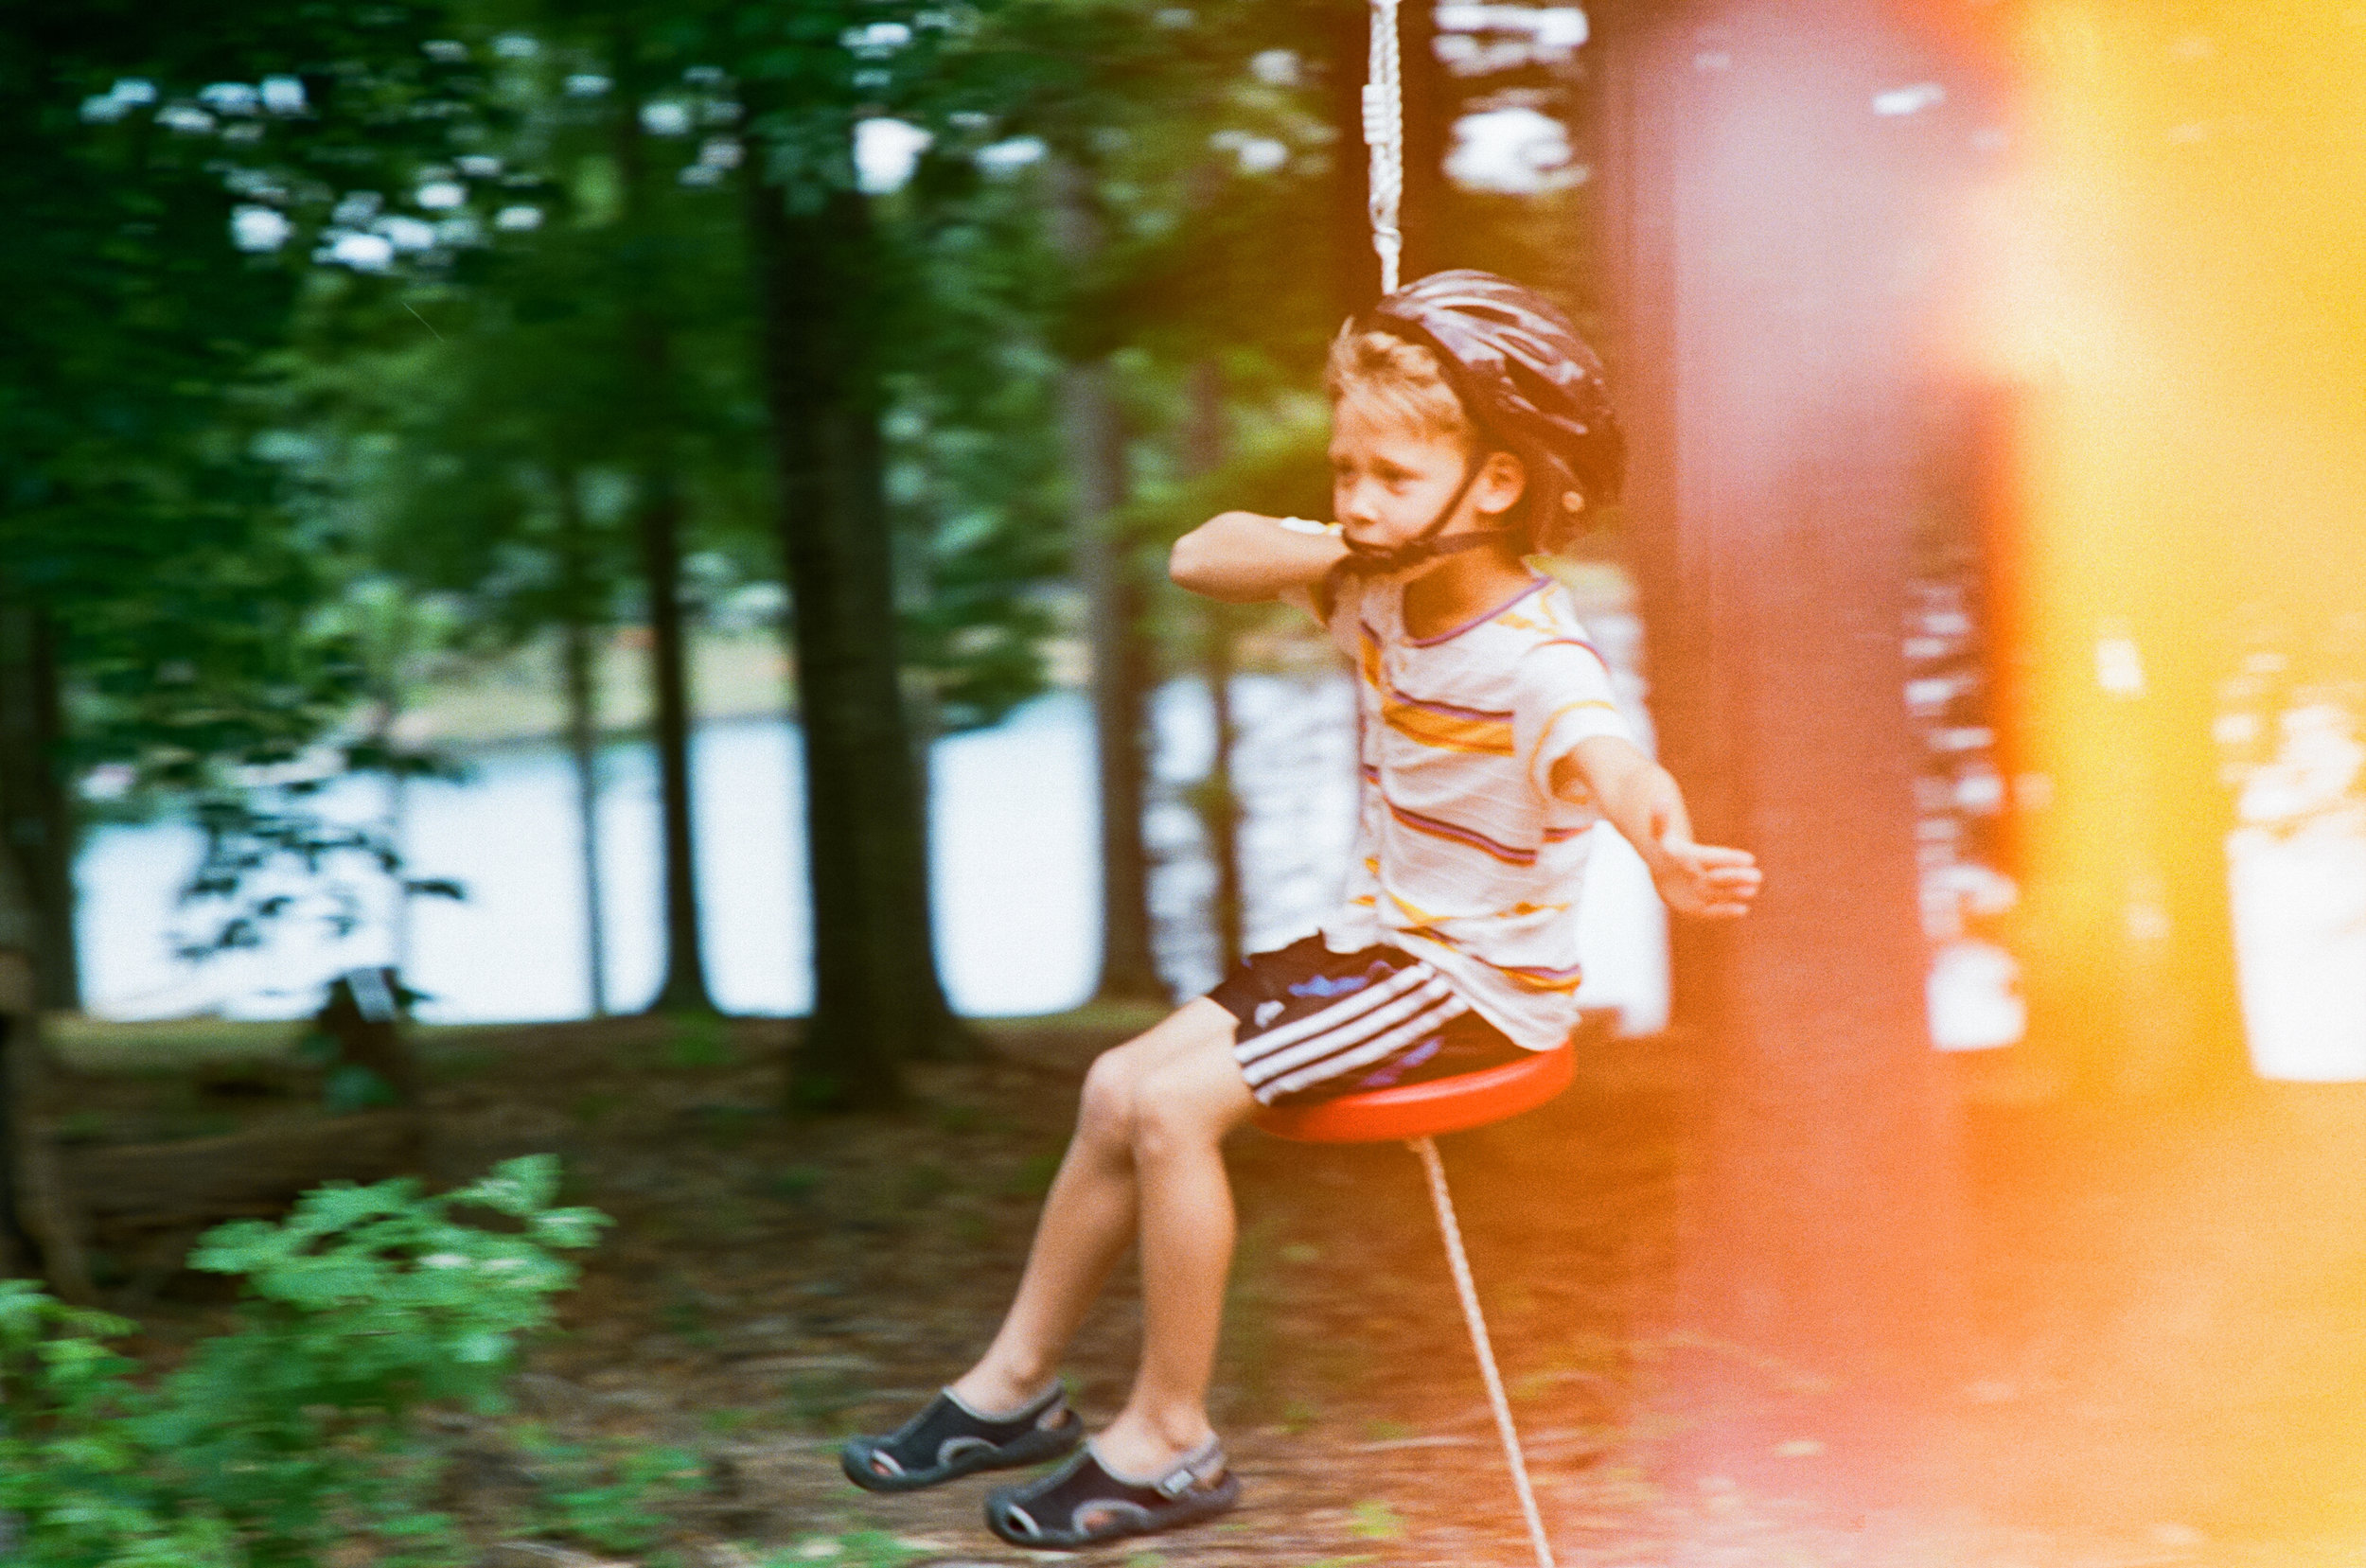 fourth-of-july-film-photography-nikon-action-touch-light-leak